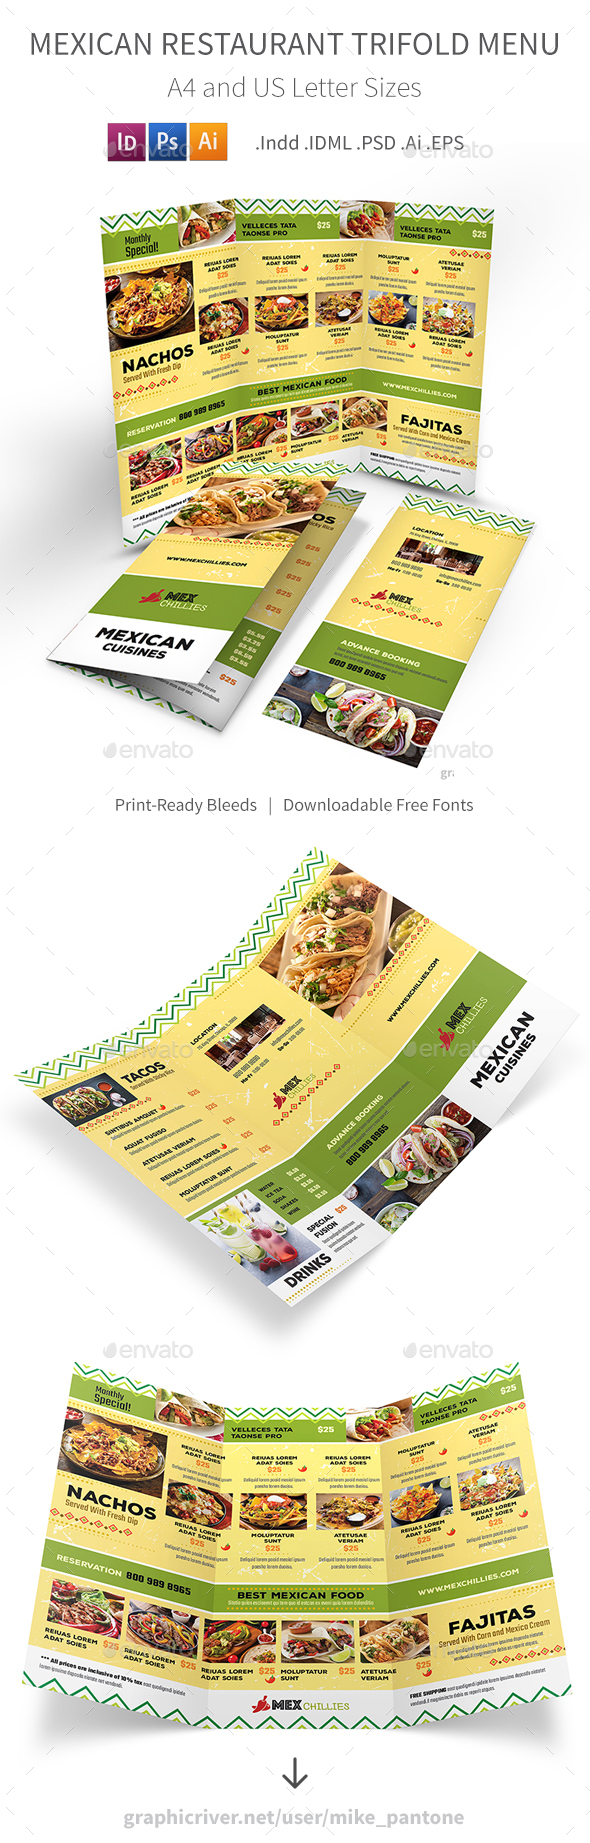 Mexican Restaurant Trifold Menu 2 - Food Menus Print Templates